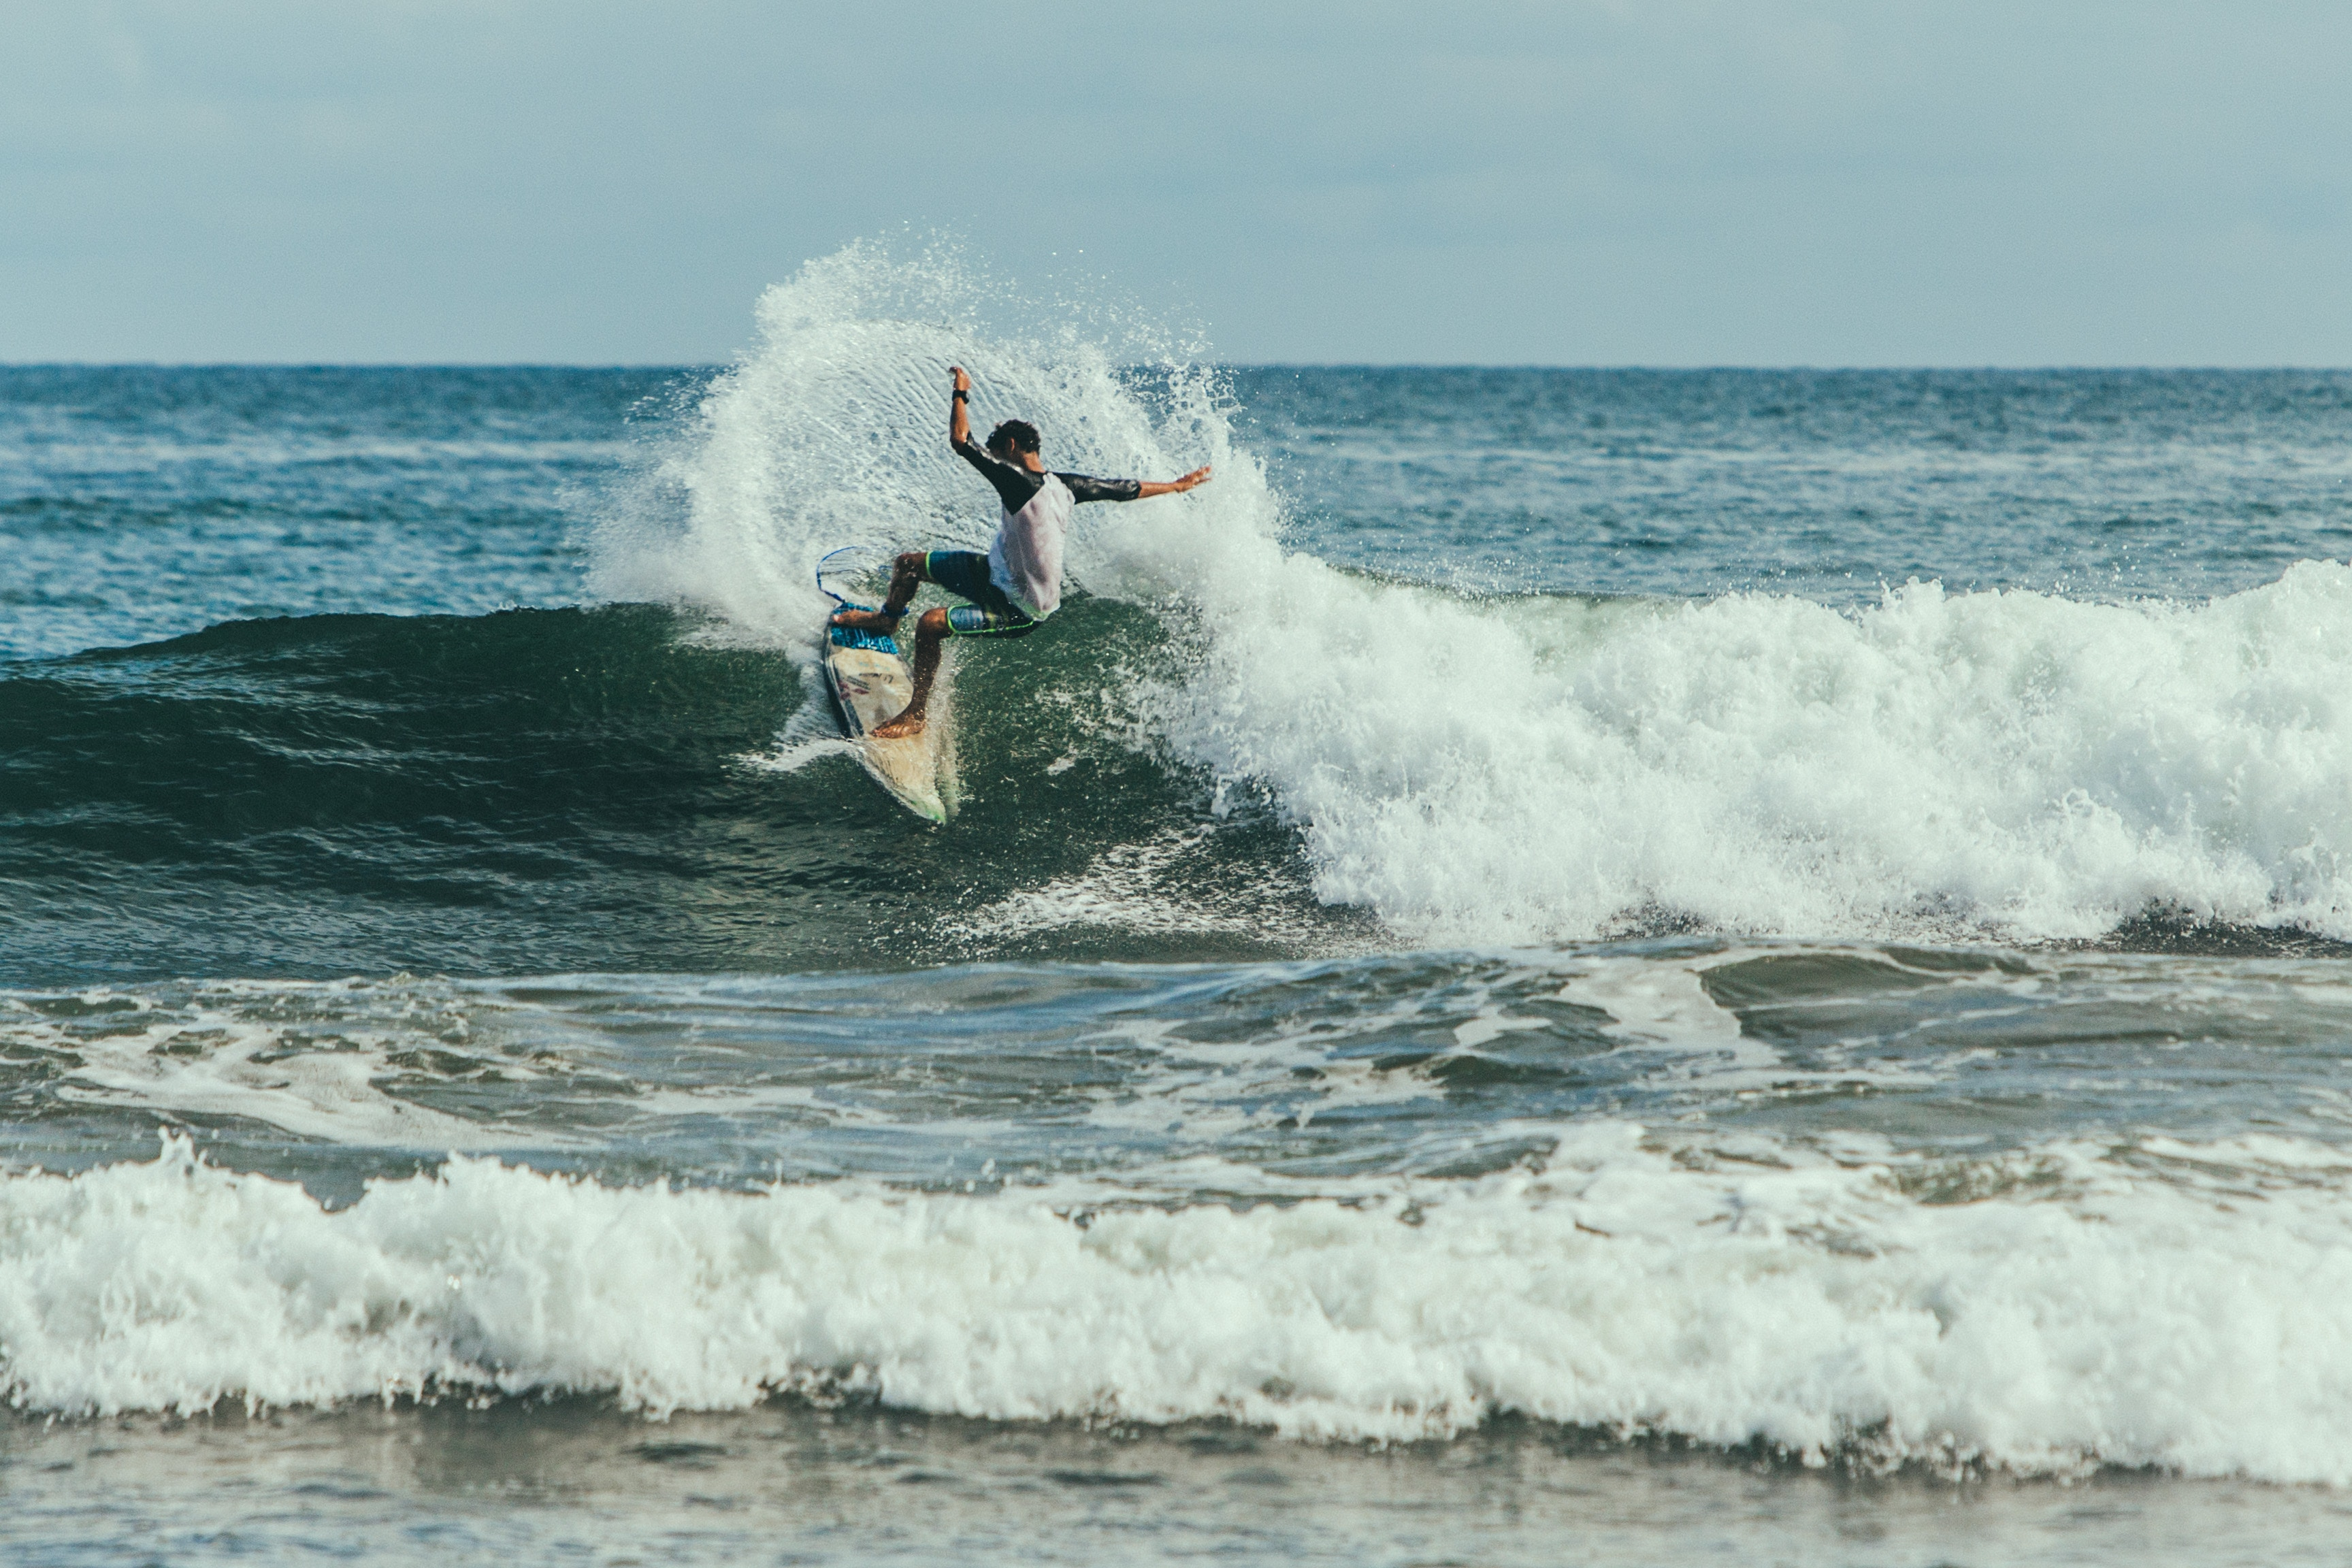 138414 download wallpaper Sports, Serfing, Surfer, Trick, Wave screensavers and pictures for free